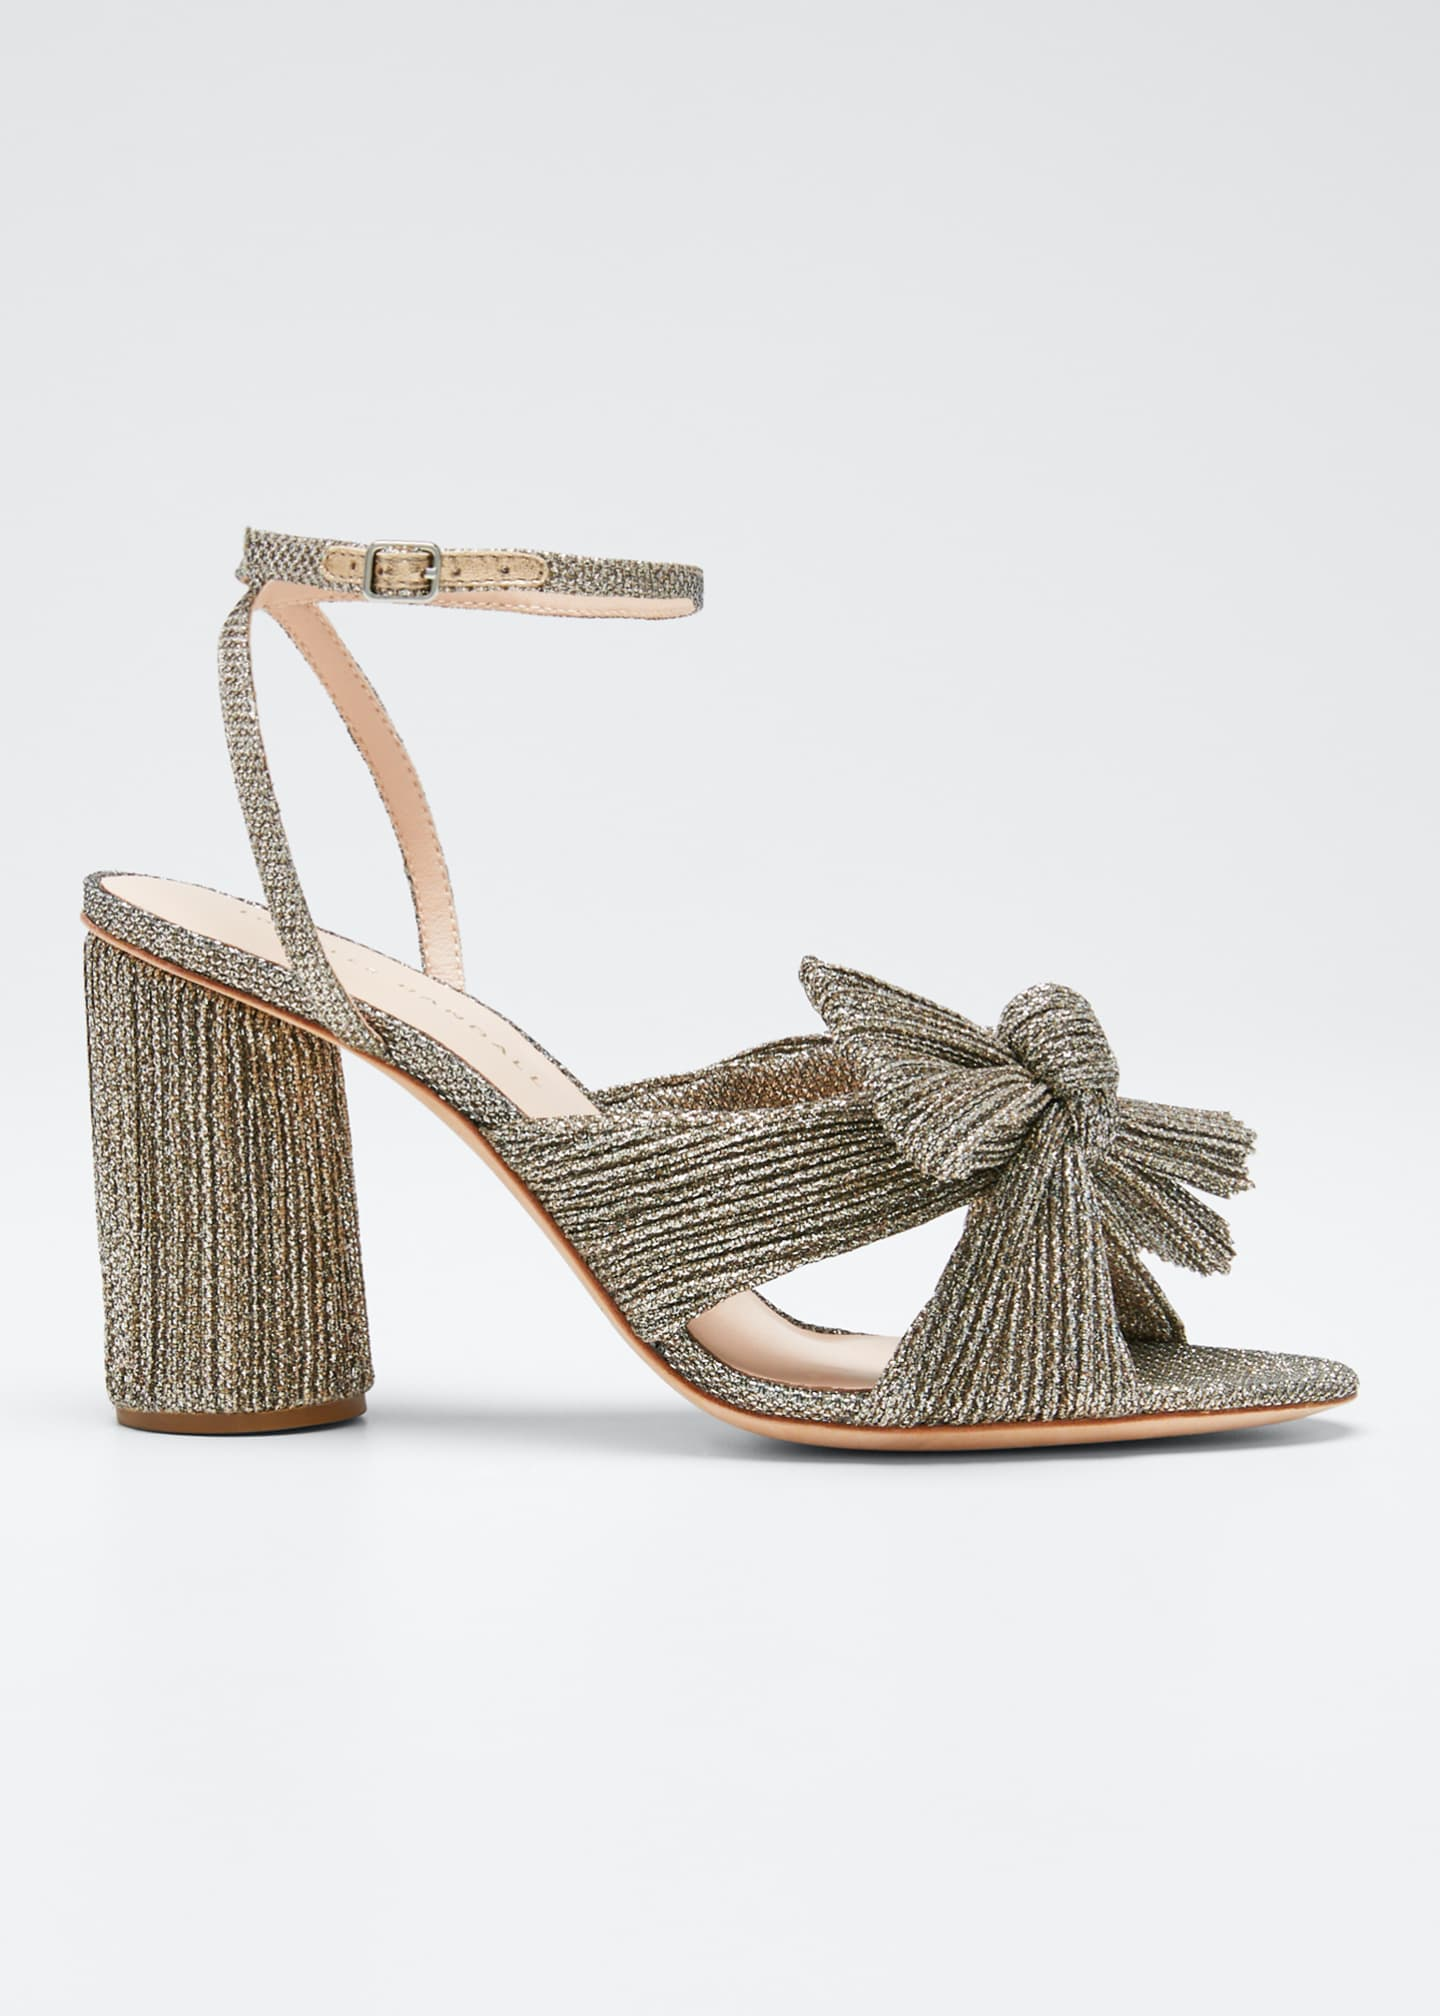 Image 1 of 3: Camellia Knotted Ankle-Strap Sandals